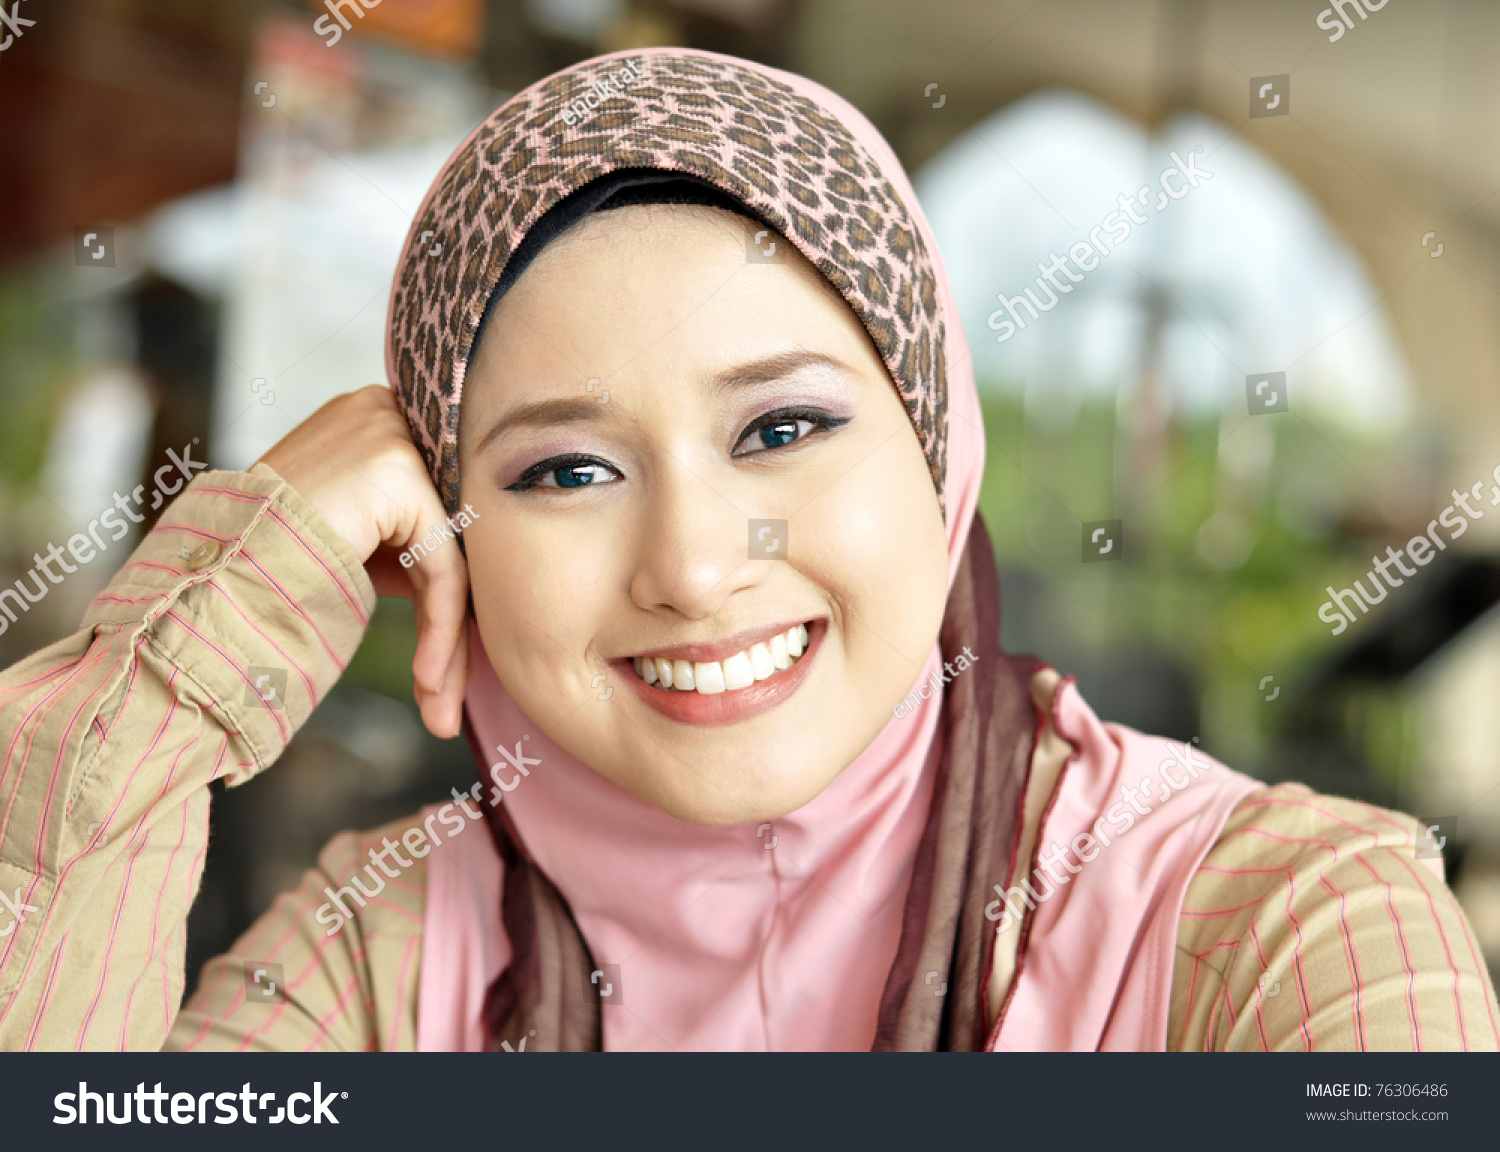 close lovely muslim girl sweet smile stock photo (download now